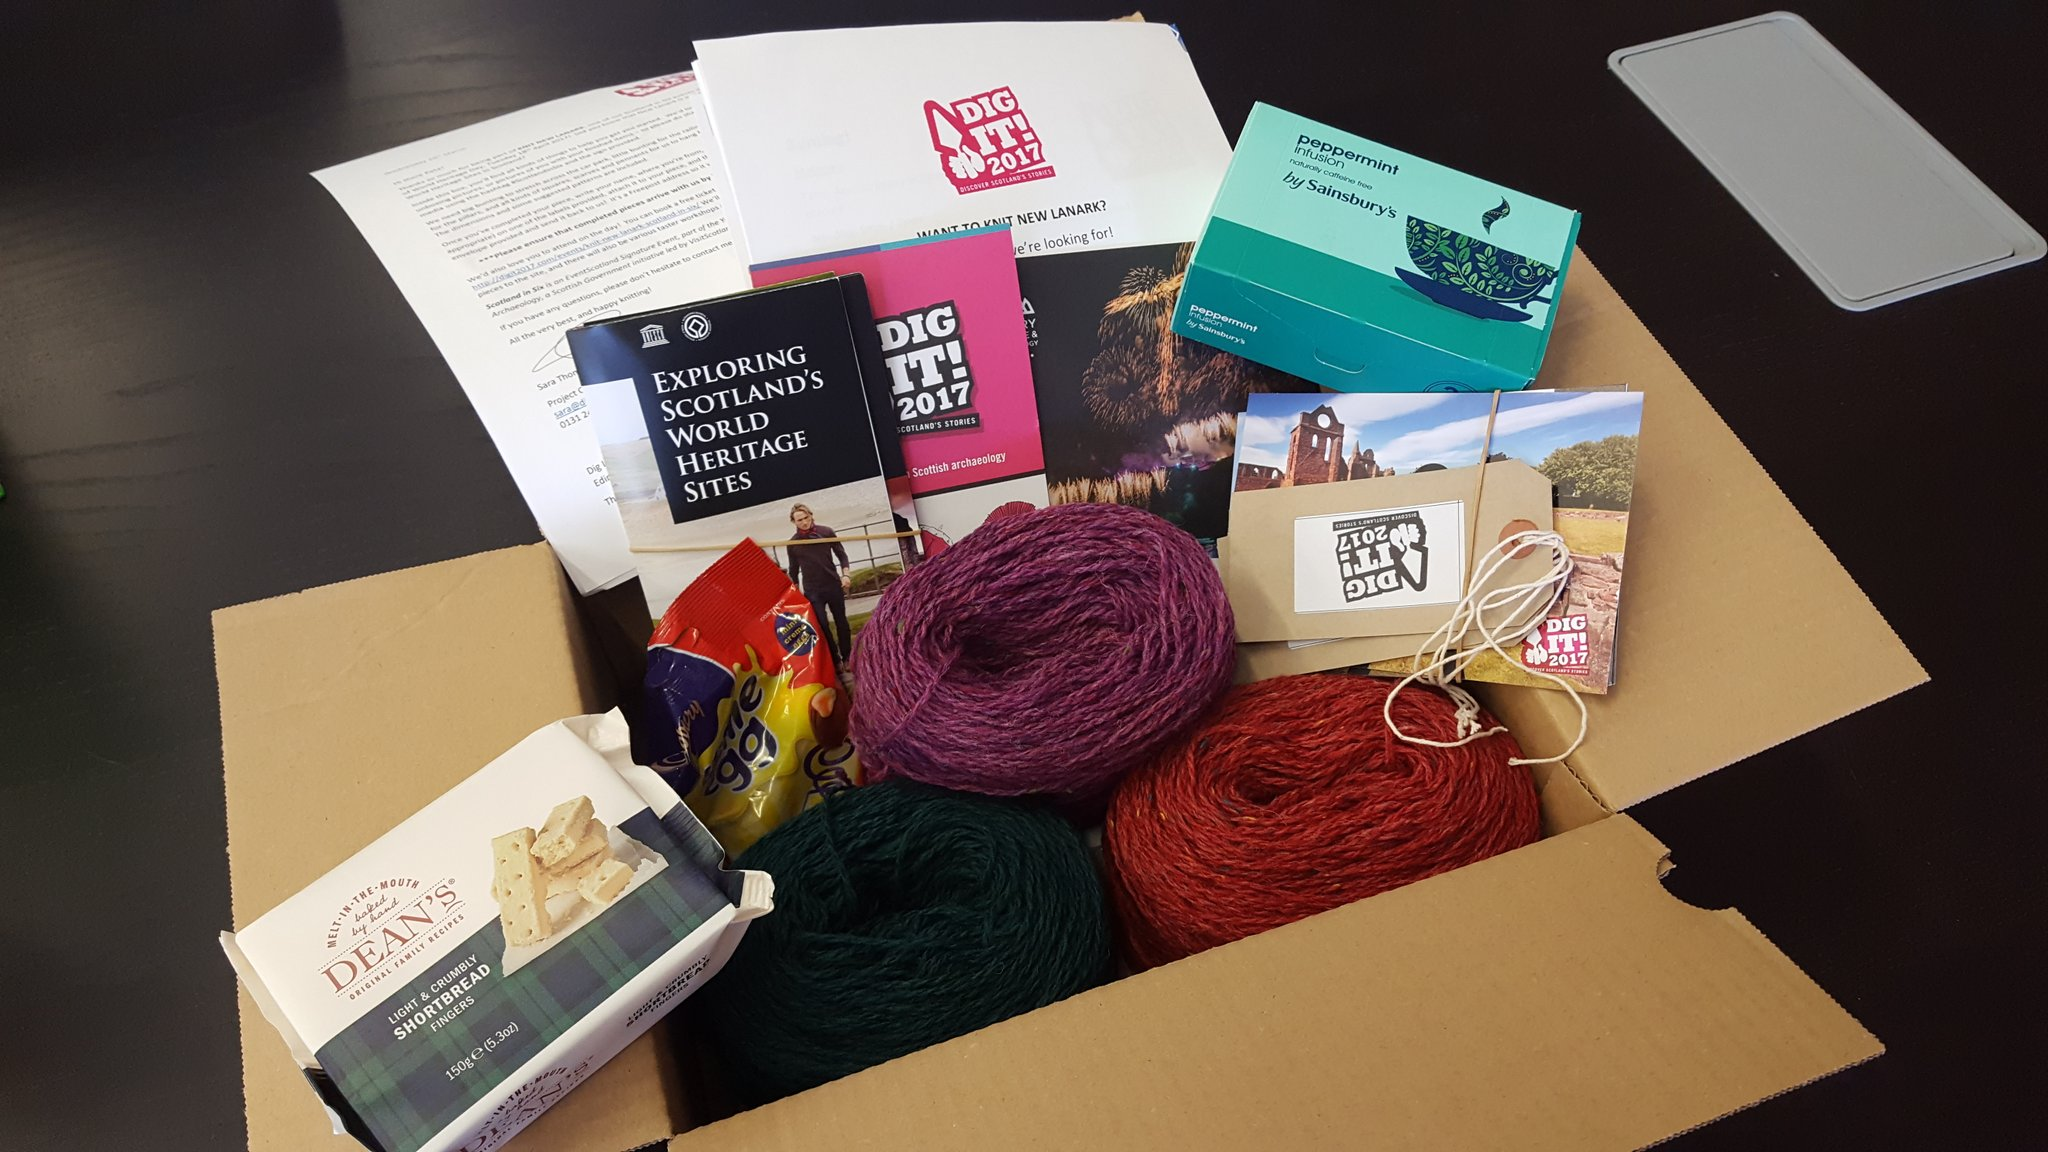 Sooooooo excited to receive my 'Knitting New Lanark' pack from @DigIt2017 !! Such lovely wool and treats! Weekend sorted :-) #ScotlandinSix https://t.co/aPlHR9MstX